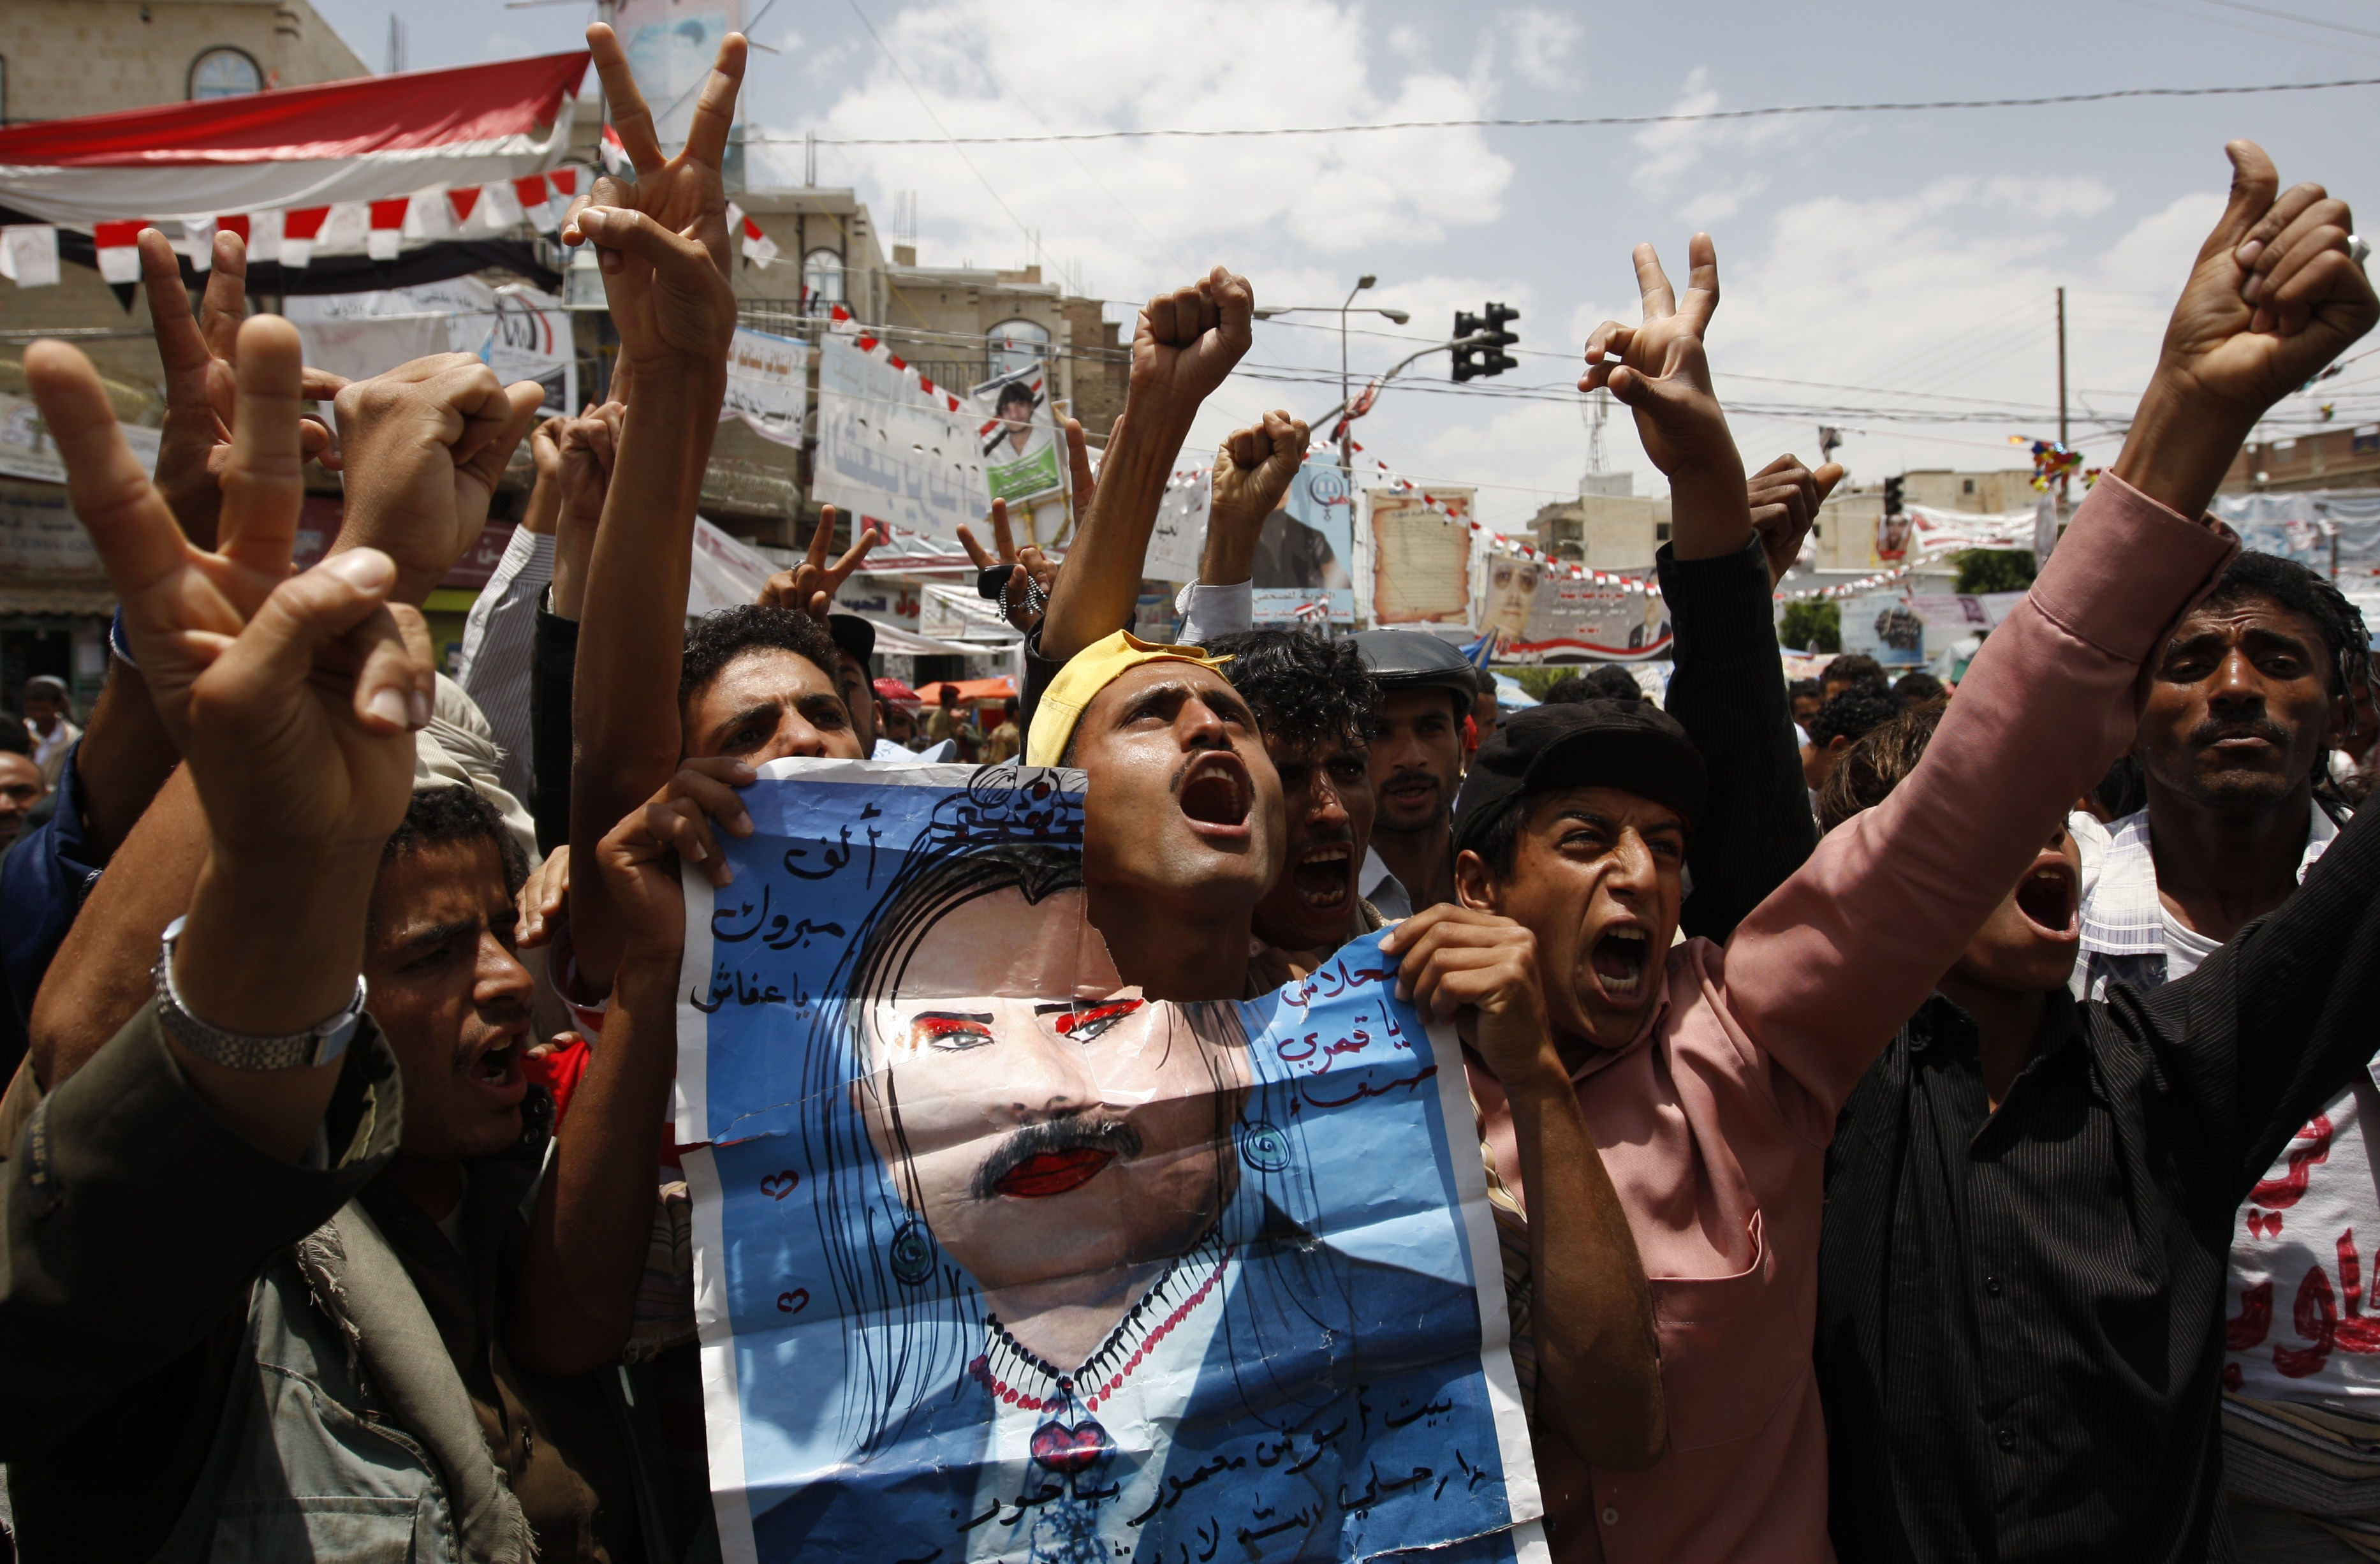 Yemeni anti-government protesters shout slogans during a demonstration calling for the ouster of President Ali Abdullah Saleh in Sanaa.